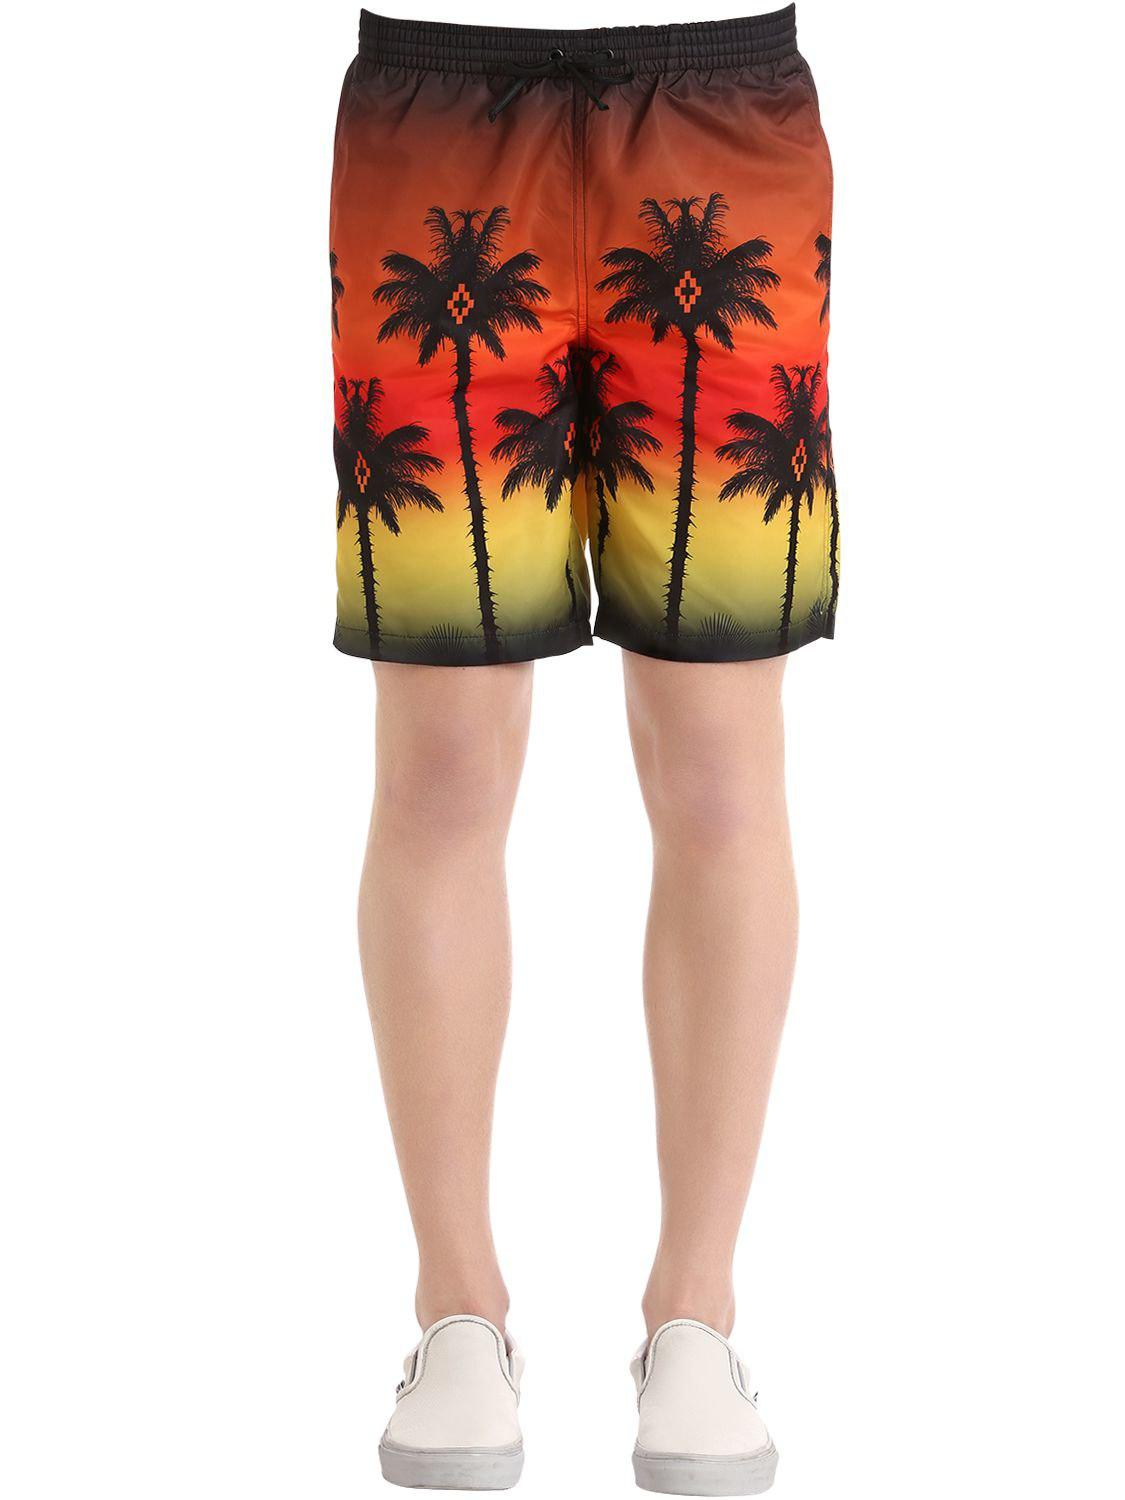 9a72b627d6 Marcelo Burlon Red Palm Printed Swim Shorts in Red for Men - Lyst